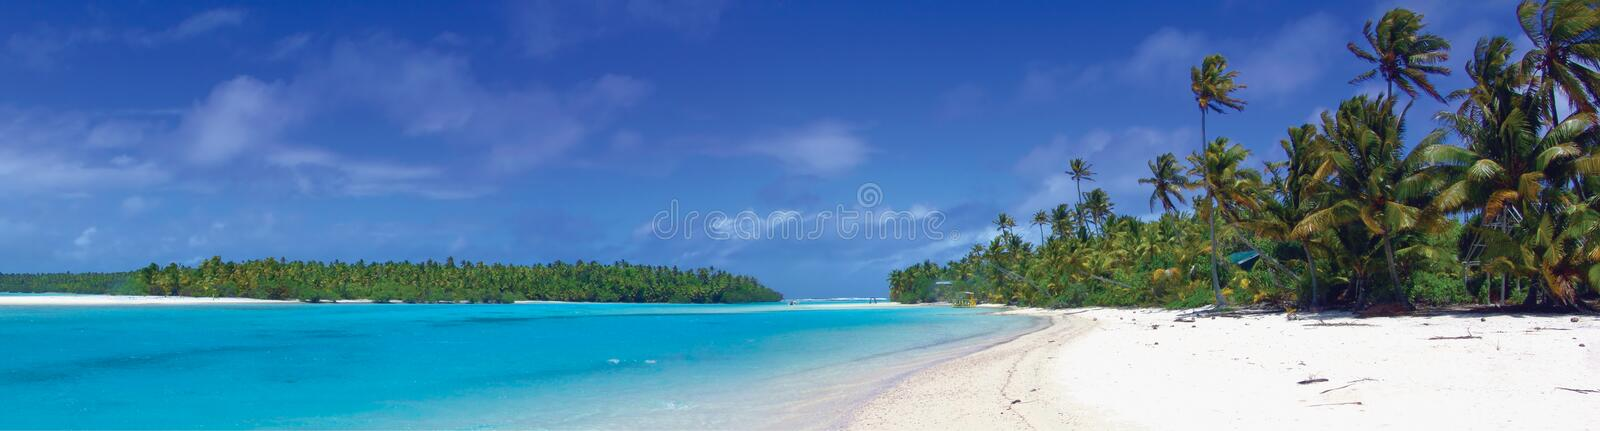 Tropical Panorama royalty free stock photos